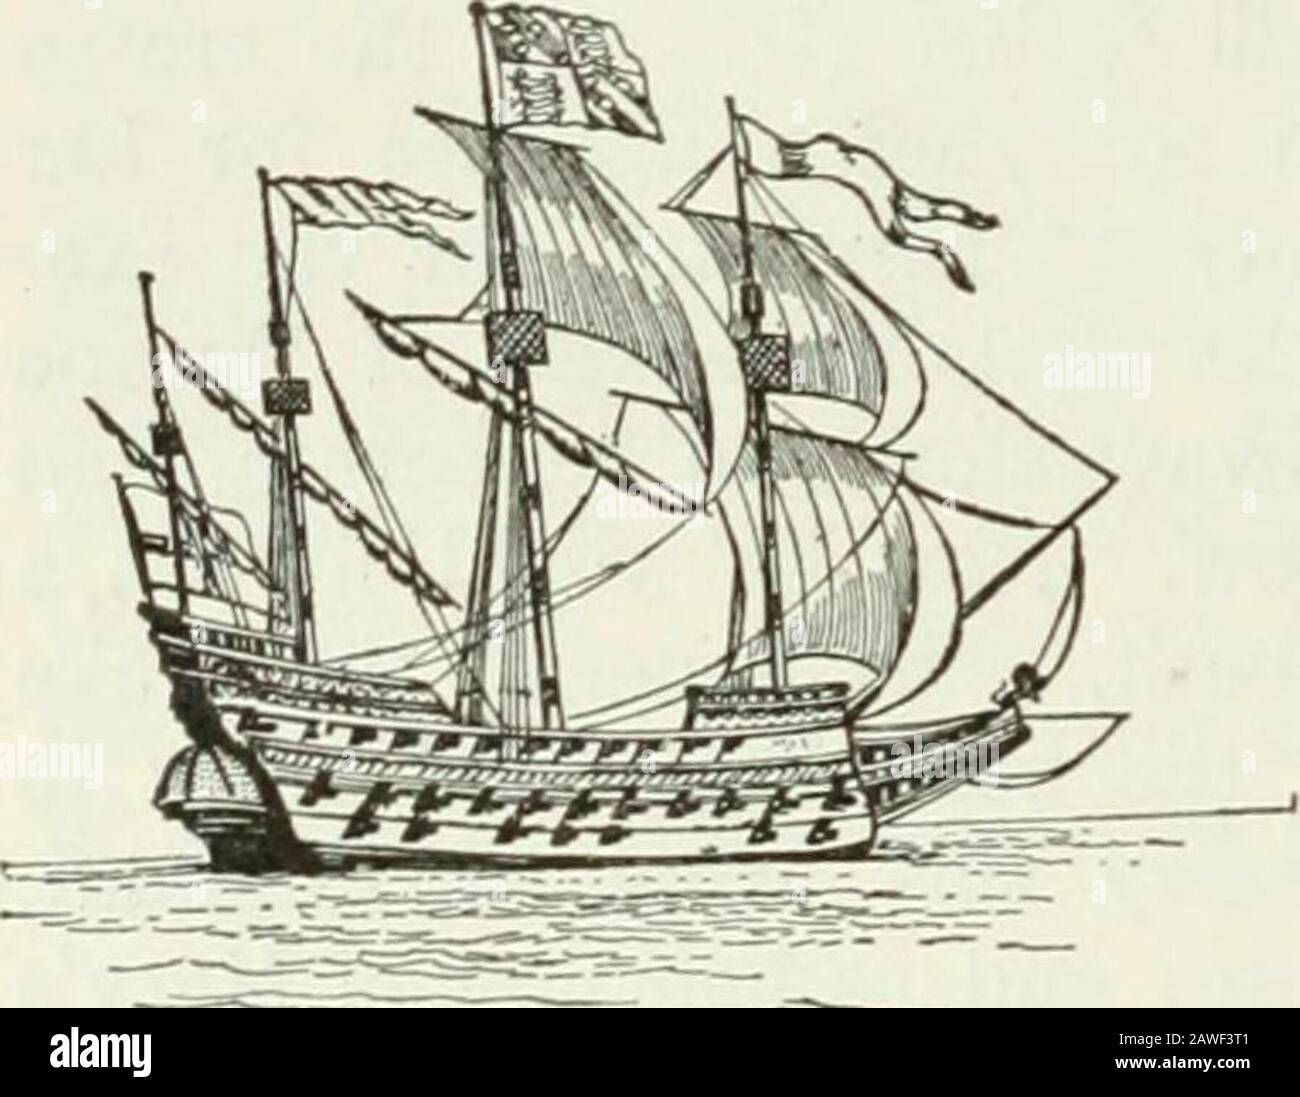 Ontario High School History of England . times as numerous as those of the royal navy, would takepart in the fight when the time came. No doubt the Englishships were smaller than the ships of Spain. These, withtheir high castles in bow and stern, and their broad bows,looked formidable. The English, however, had the advantageof more powerful cannon with which they could batter the 232 HISTORY OF ENGLAND great Spanish ships, while keeping out of range them-selves. Their ships were also swifter, and they could beatbetter to windward, and turn more readily than their foes. English sailors too were Stock Photo